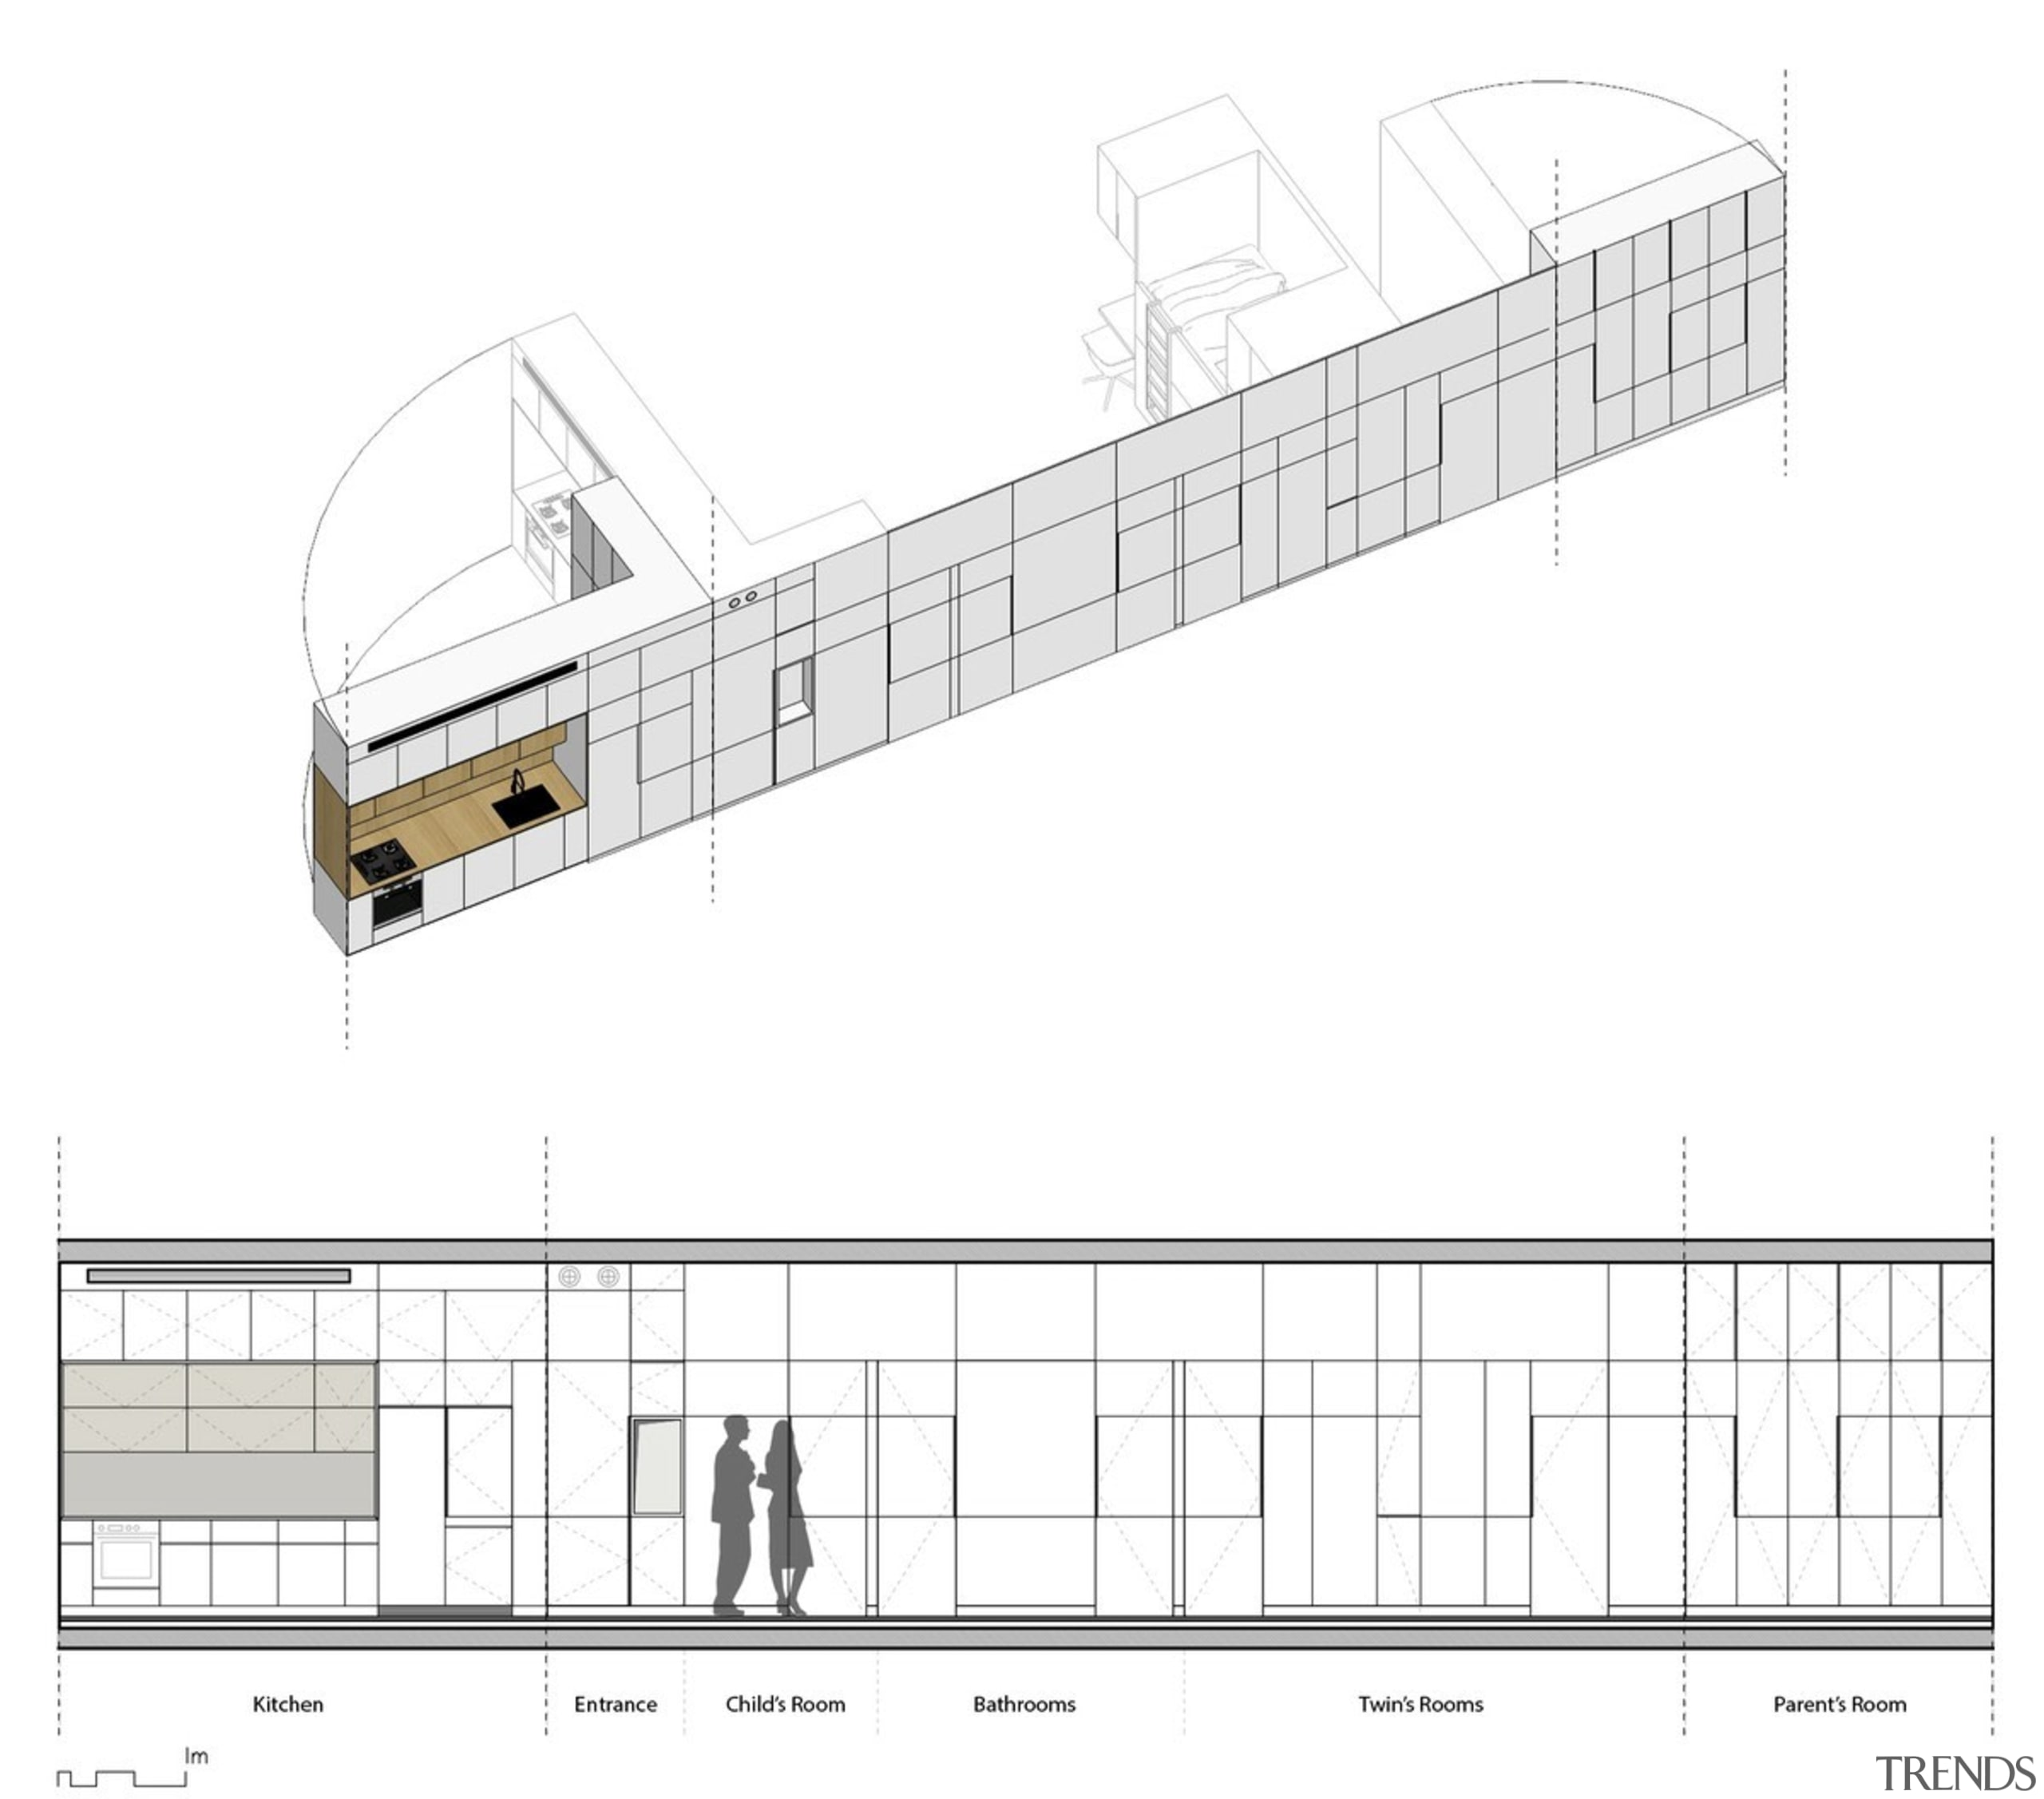 Plans - angle | architecture | area | angle, architecture, area, design, diagram, elevation, engineering, line, plan, product design, structure, white